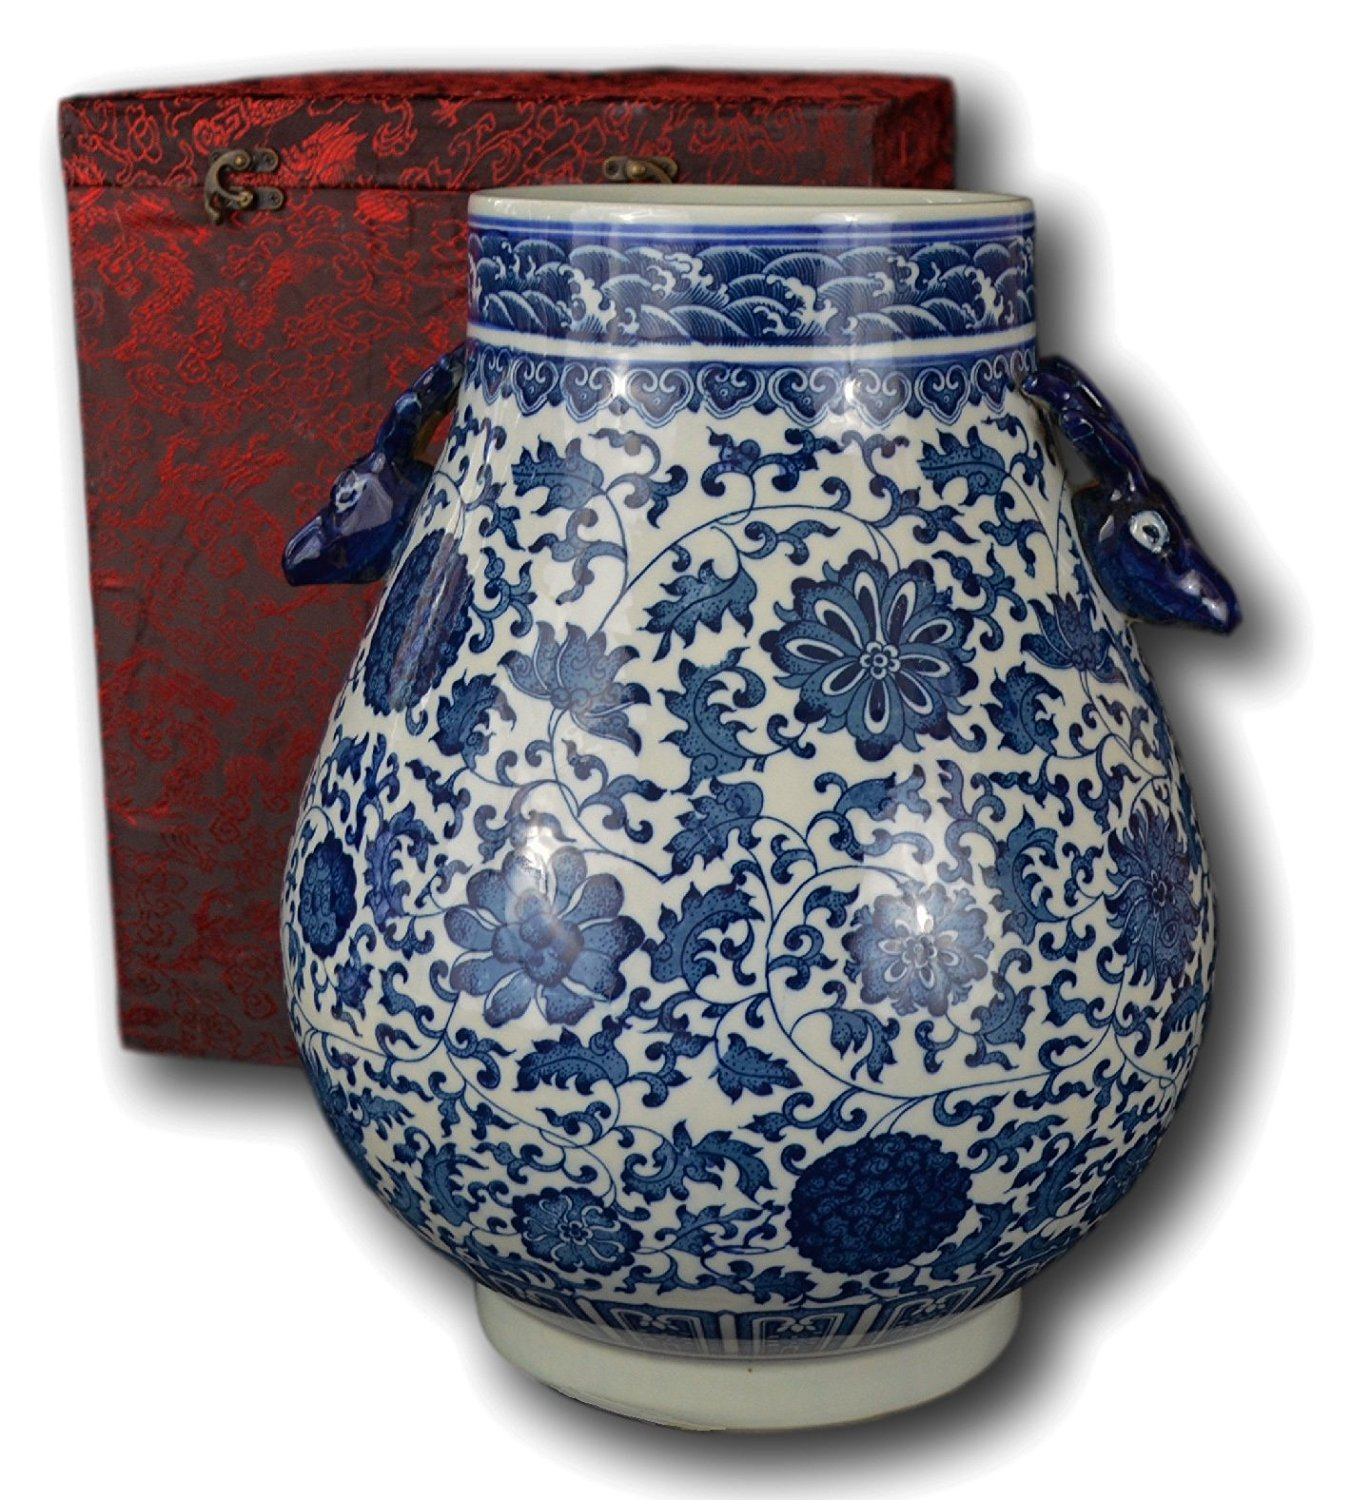 "Classic Blue and White Floral Porcelain Vase, Double Deer Head Handles China Ming Style 10"", Free Wood Base"